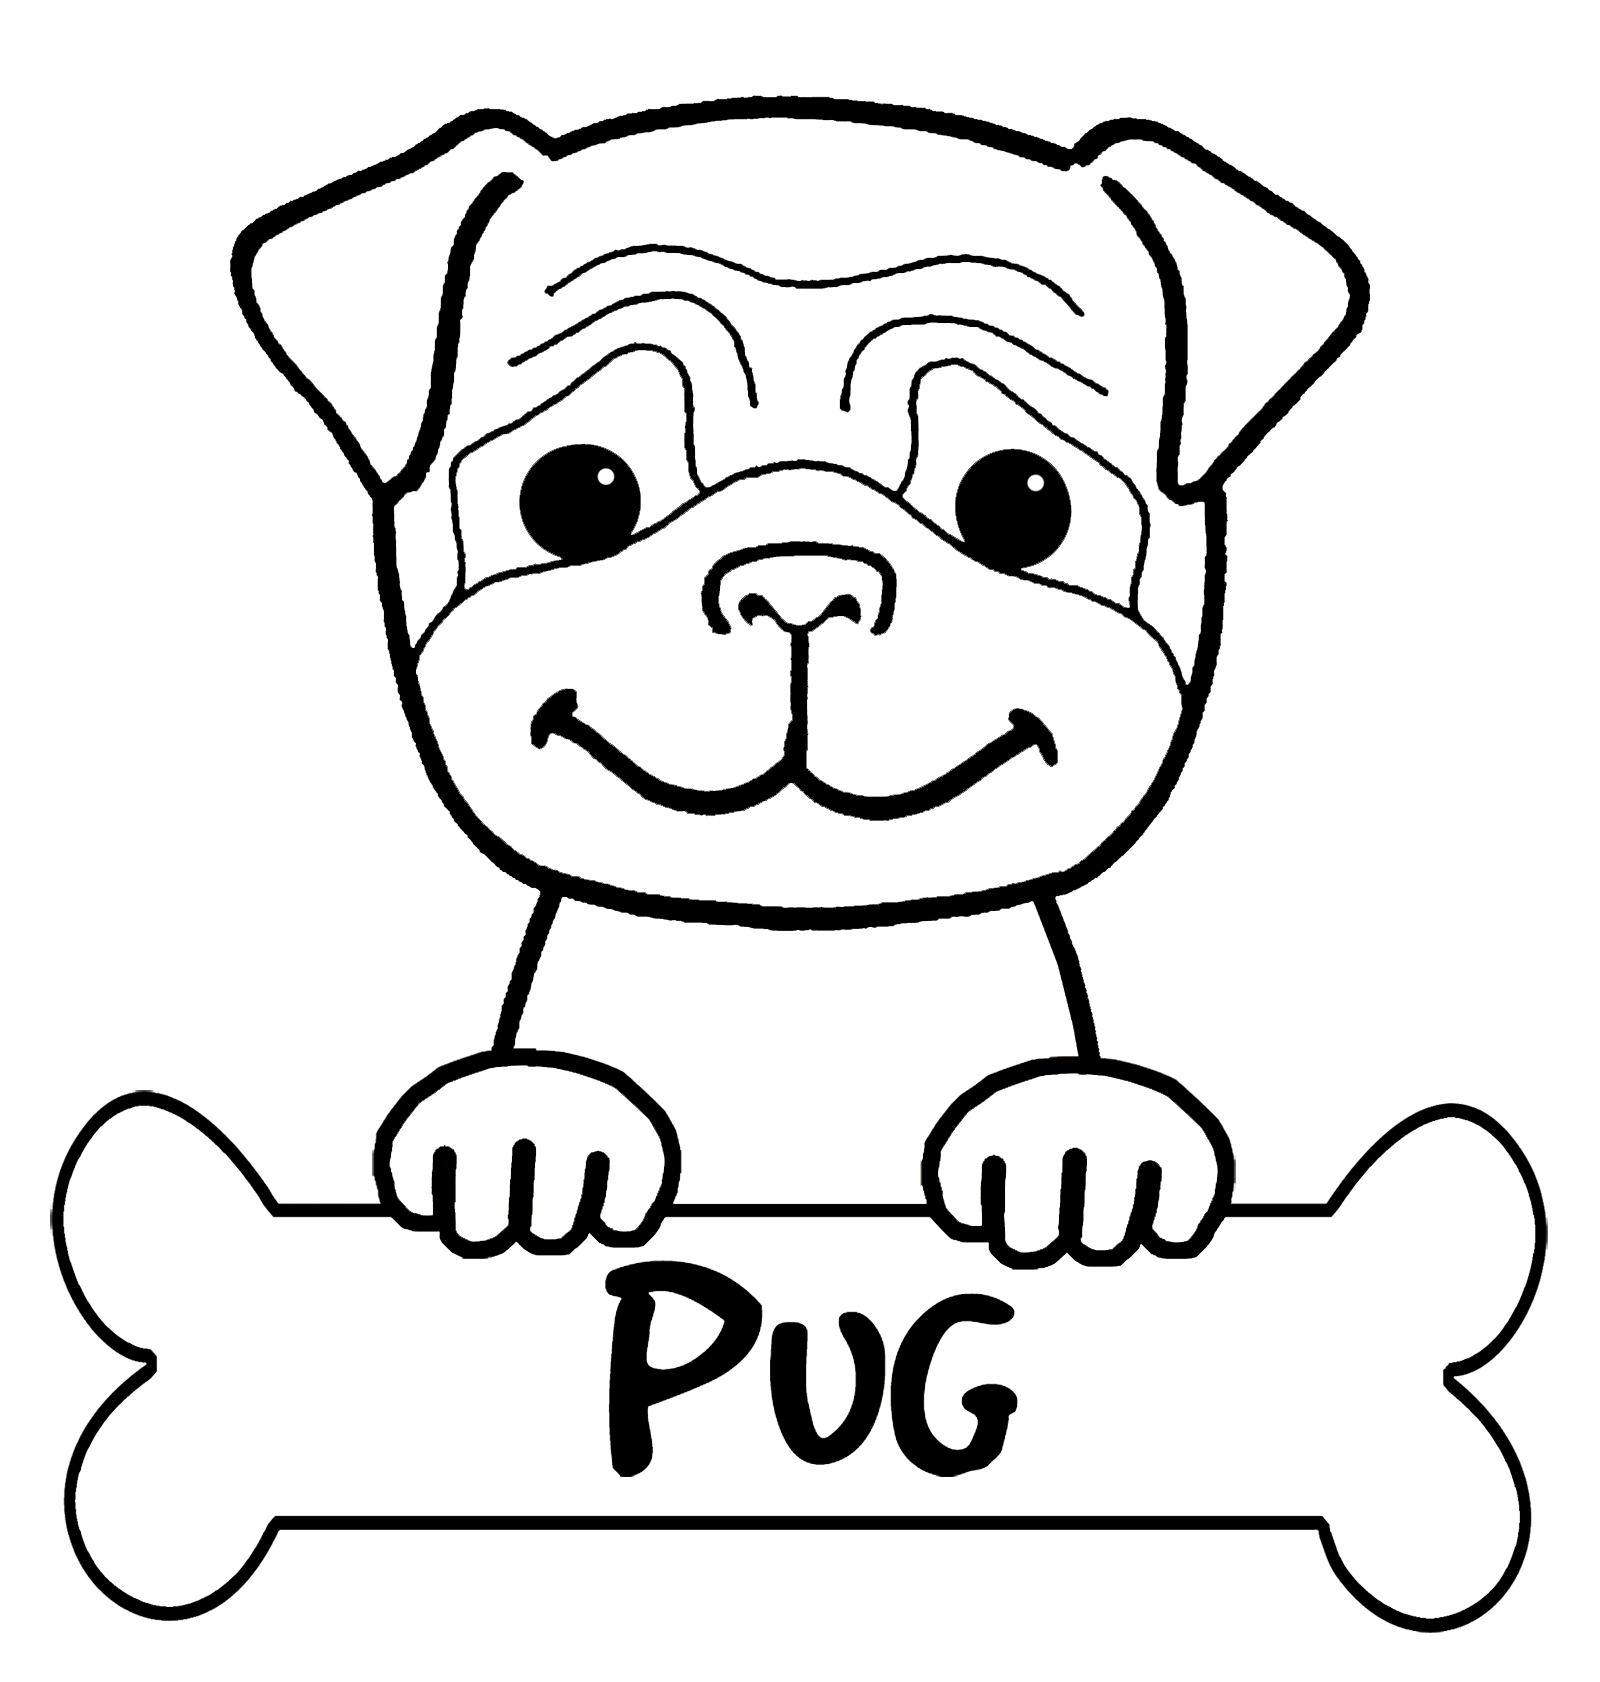 coloring page puppy pug coloring pages best coloring pages for kids coloring page puppy